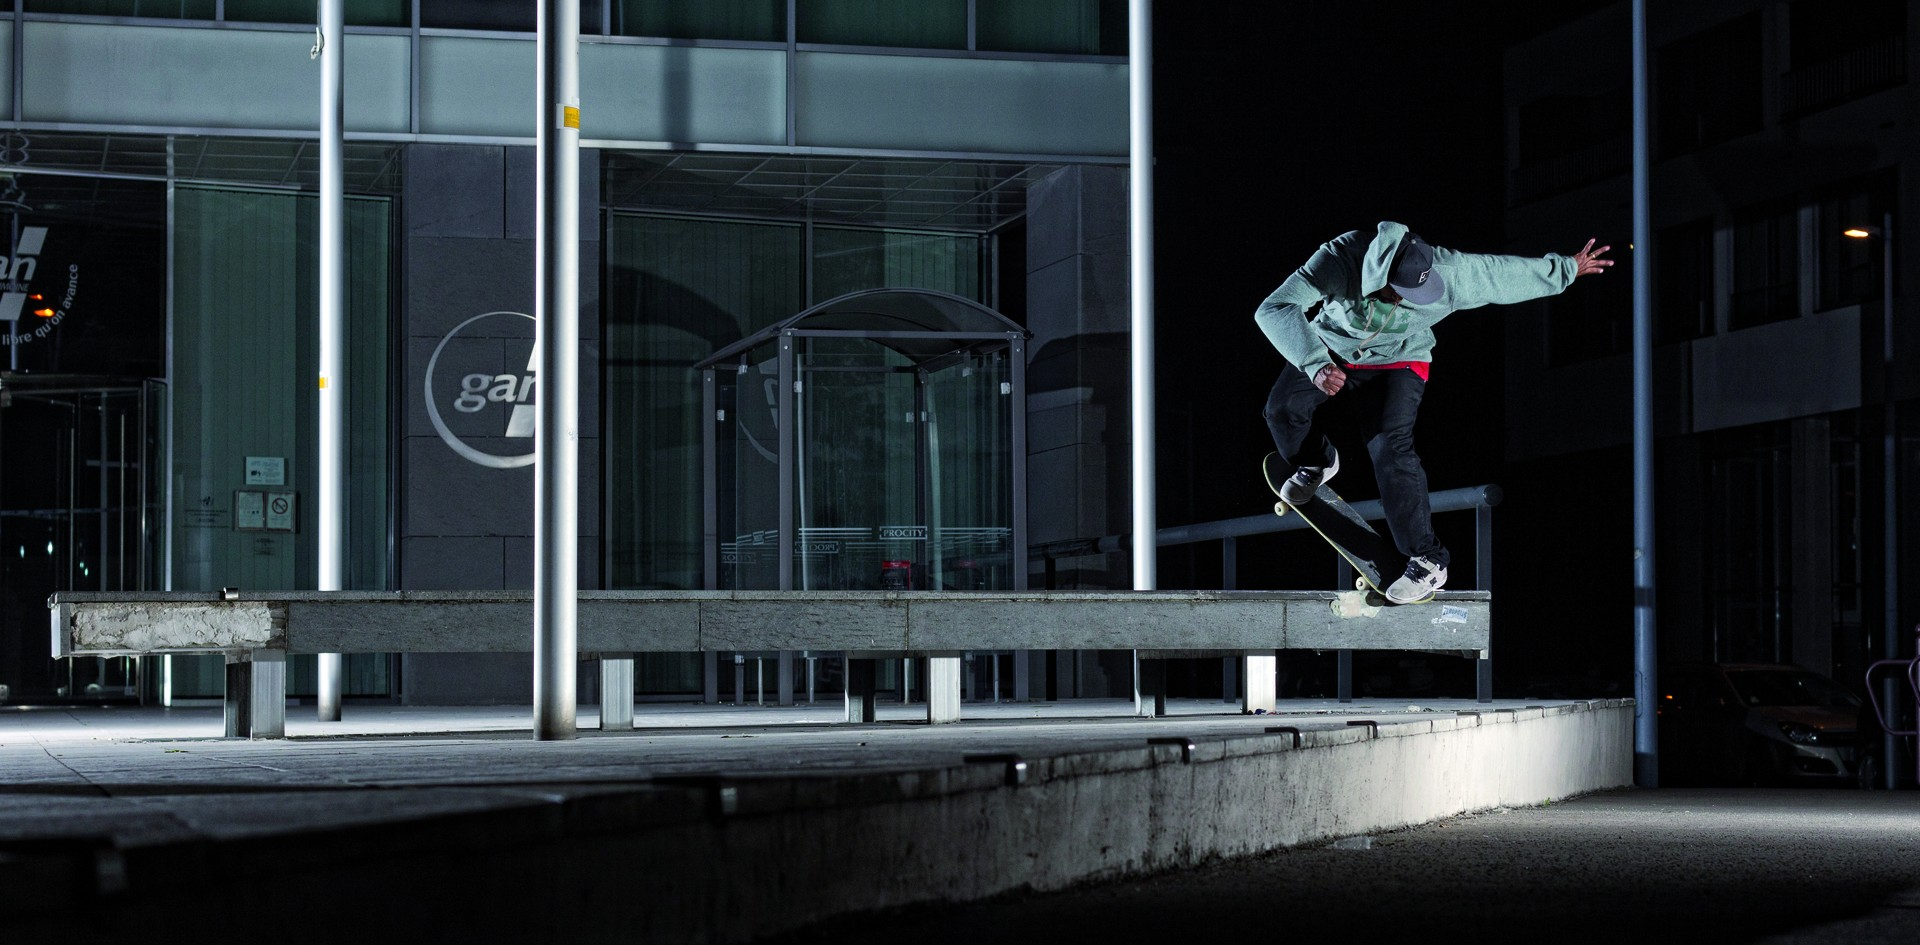 Alex Carolino backside nosebluntslide Lille